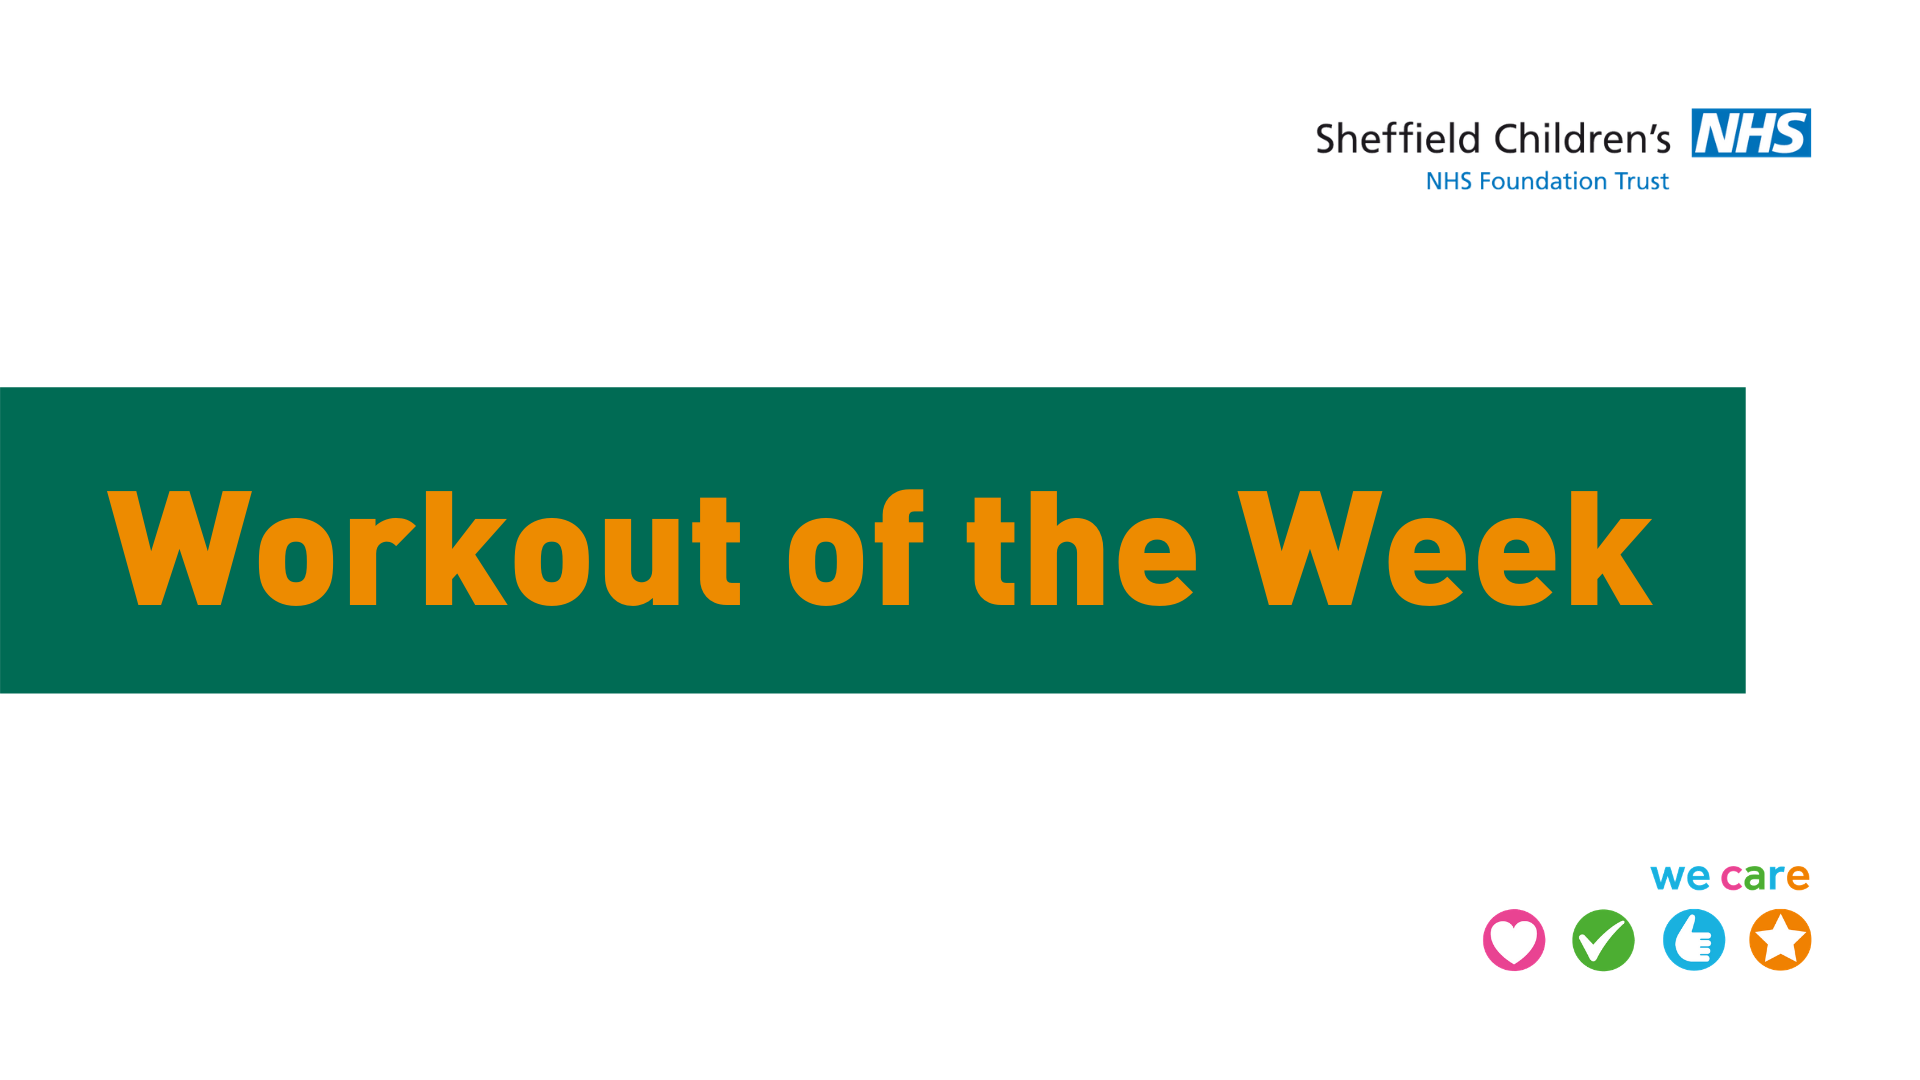 Workout of the Week returns!